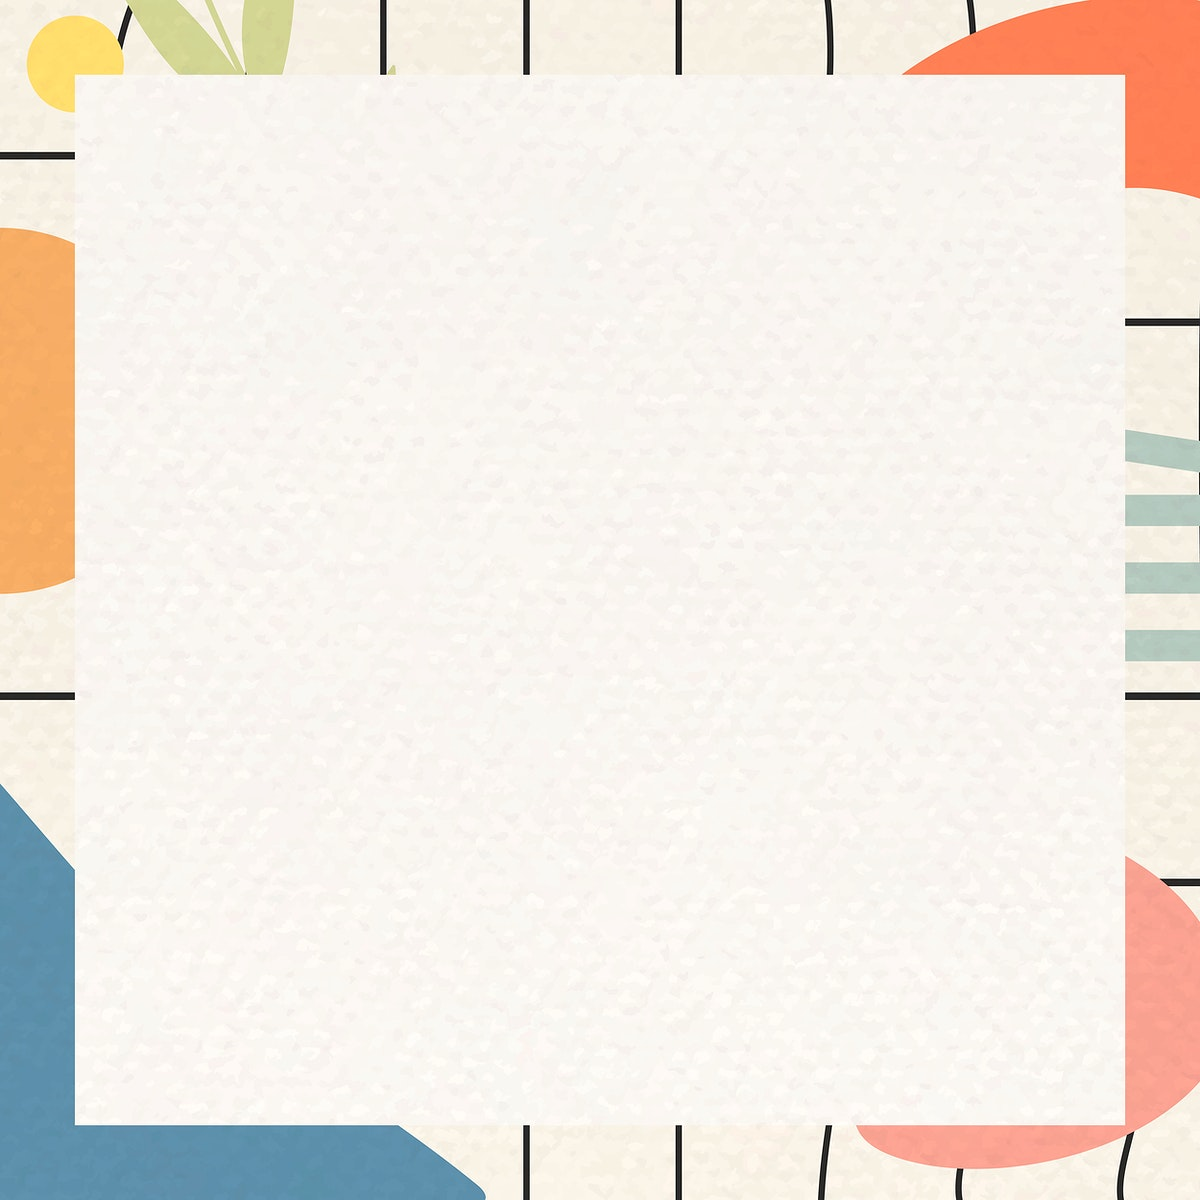 Abstract botanical frame template vector